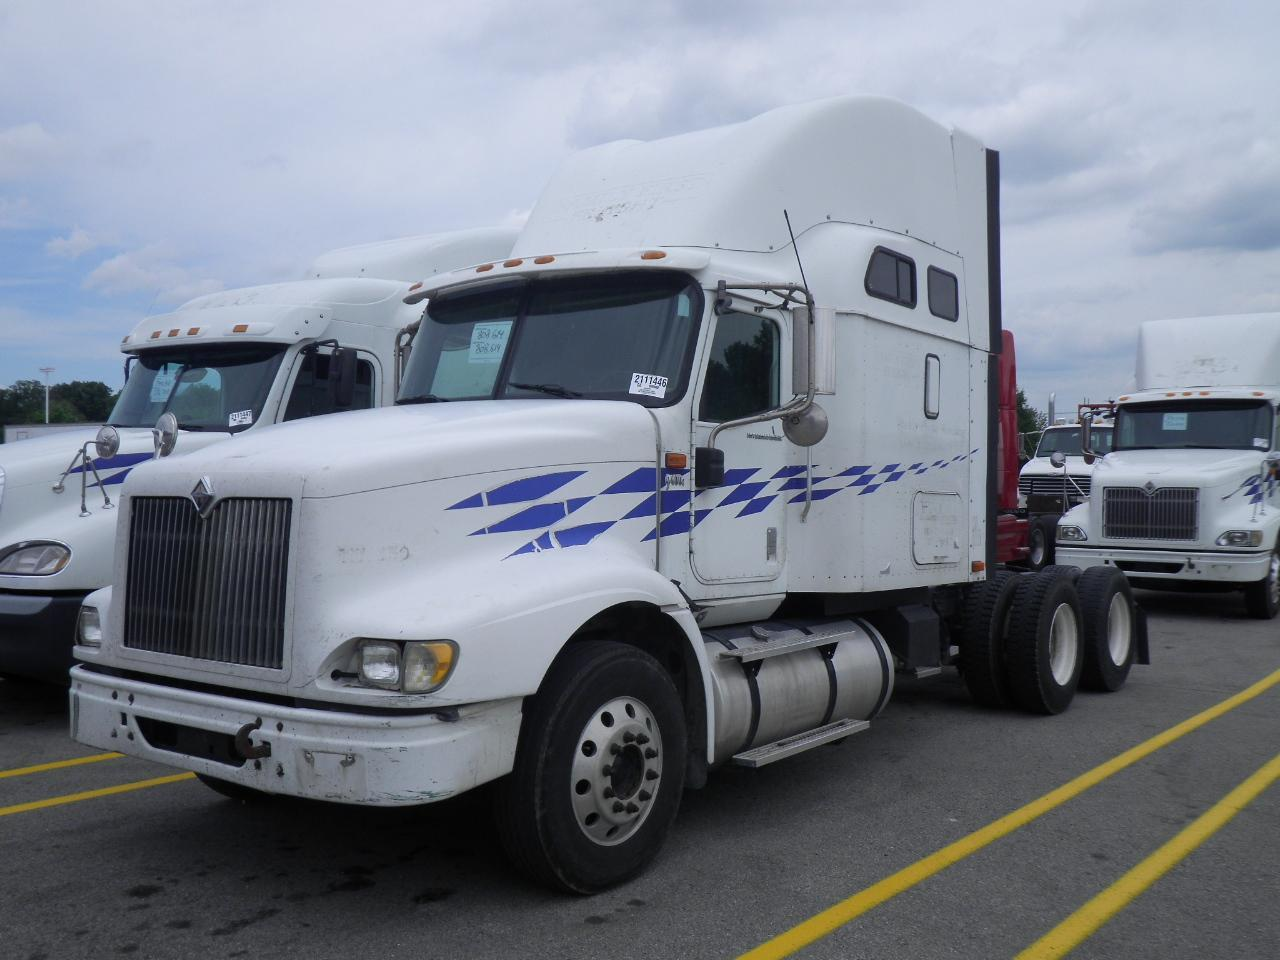 Used Trucks For Sale In Texas >> Heavy Duty Truck Sales Used Truck Sales International Trucks For